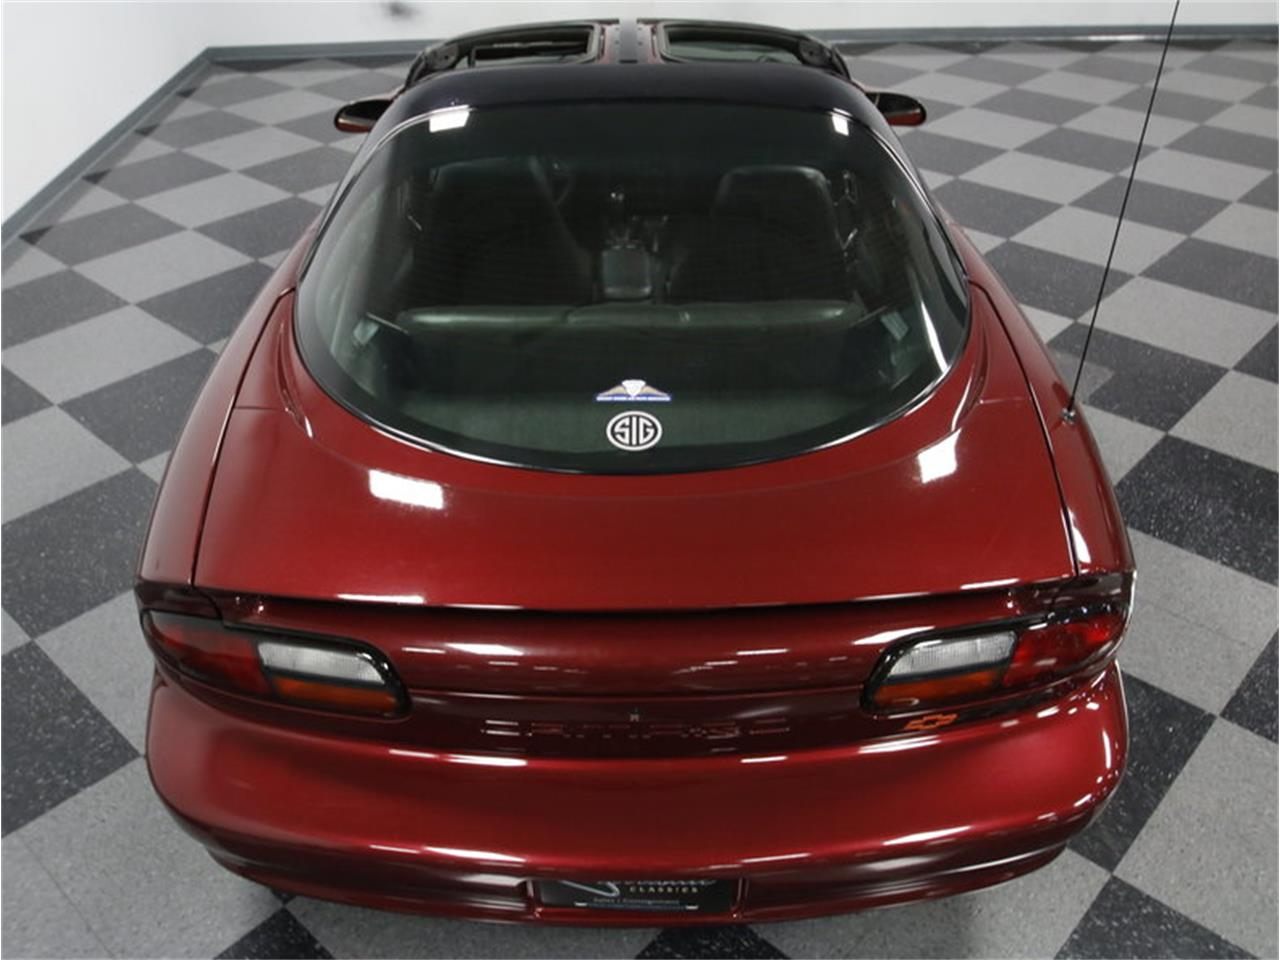 Large Picture of '00 Chevrolet Camaro Z28 located in Concord North Carolina - $15,995.00 - LHHO